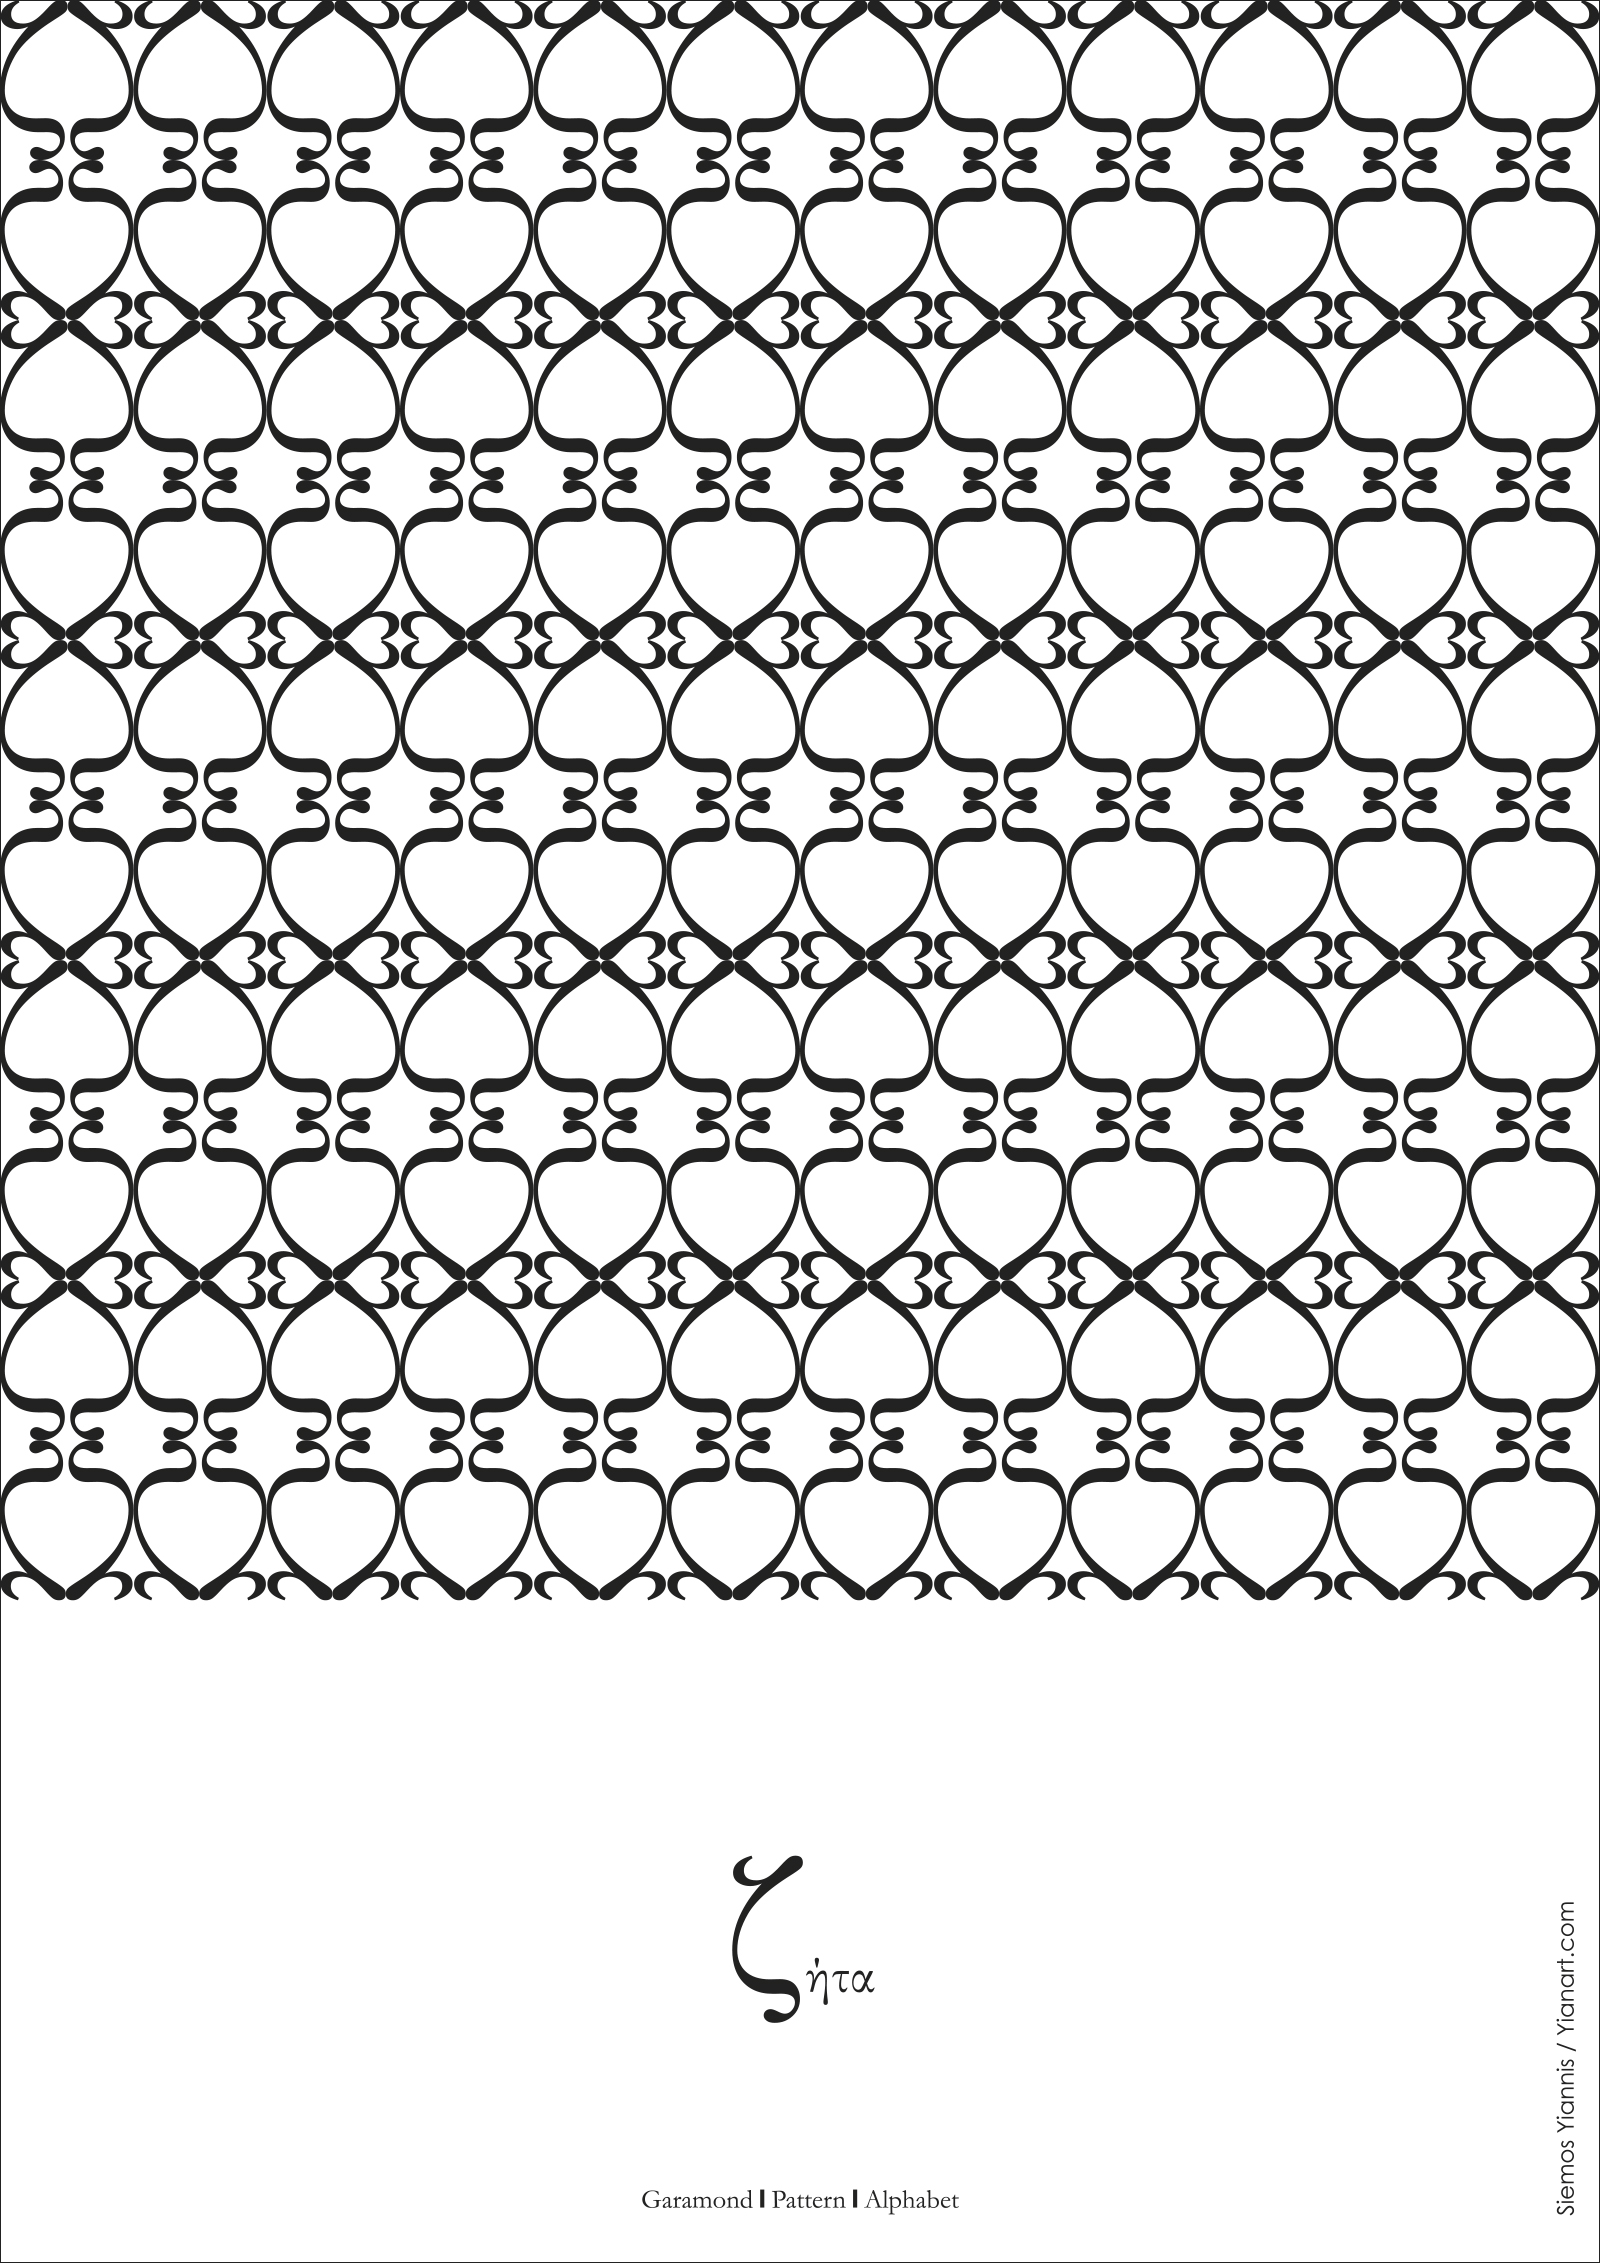 Greek Fonts Patterns_Zeta2_Yianart